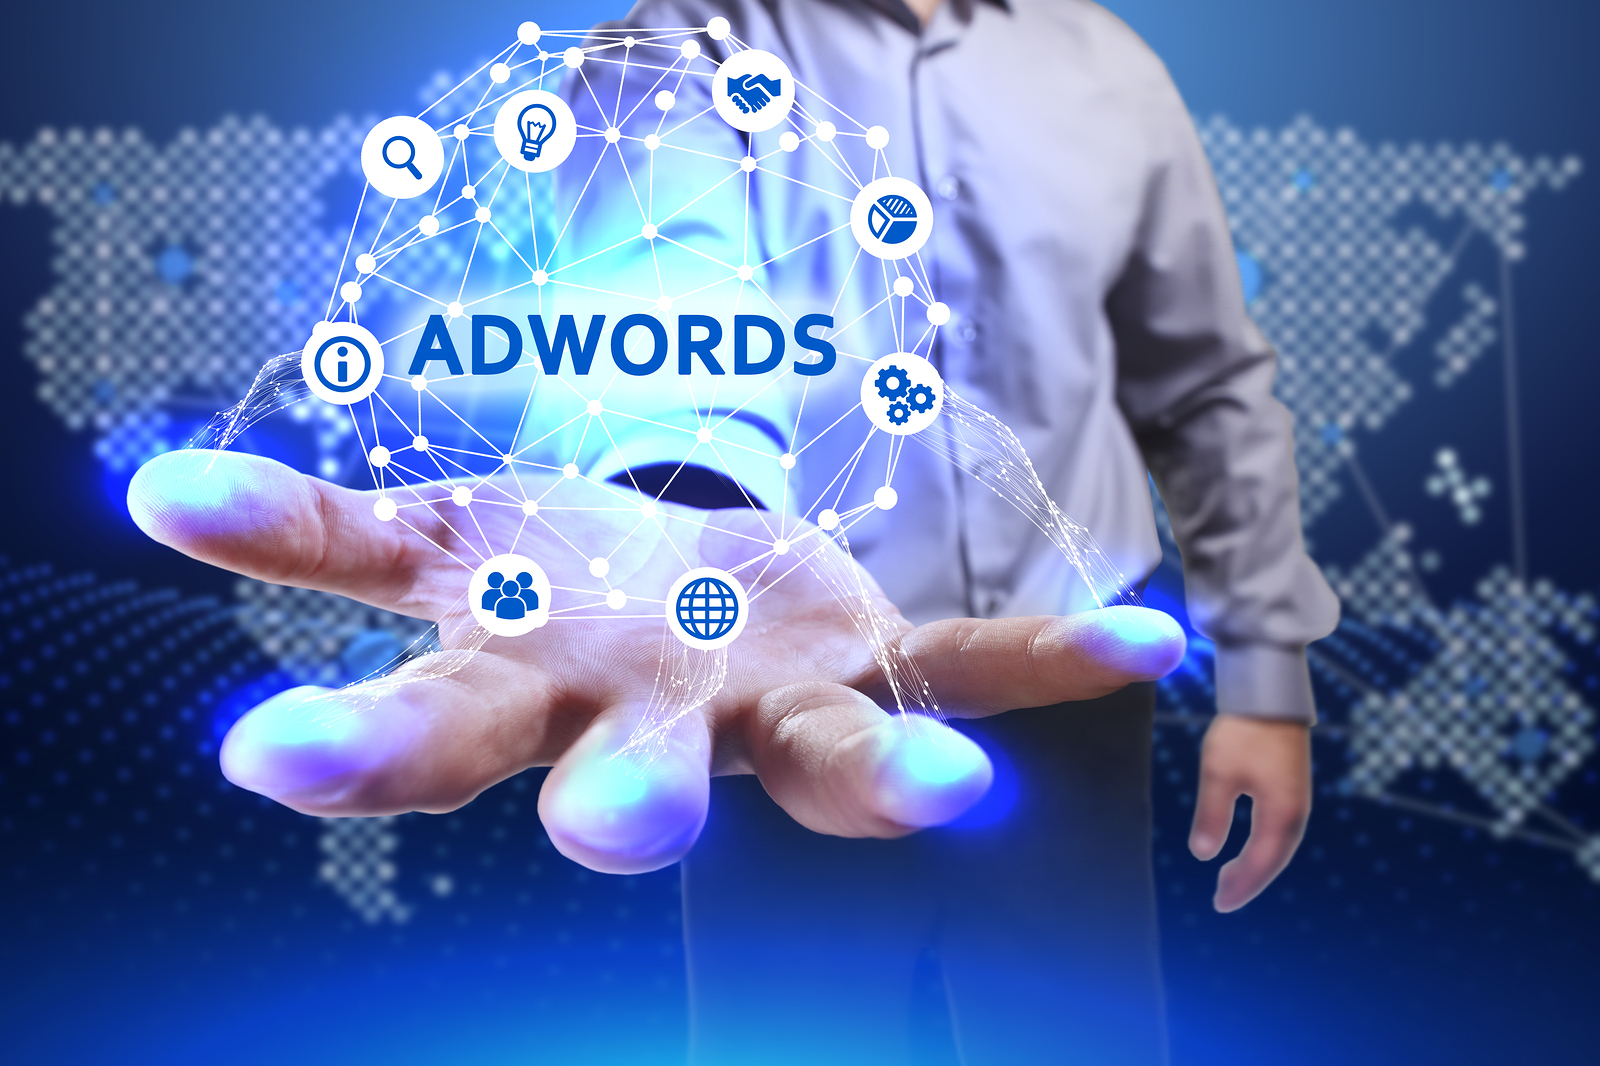 AdWords Management Company Melbourne : A Synonym of Quality Services